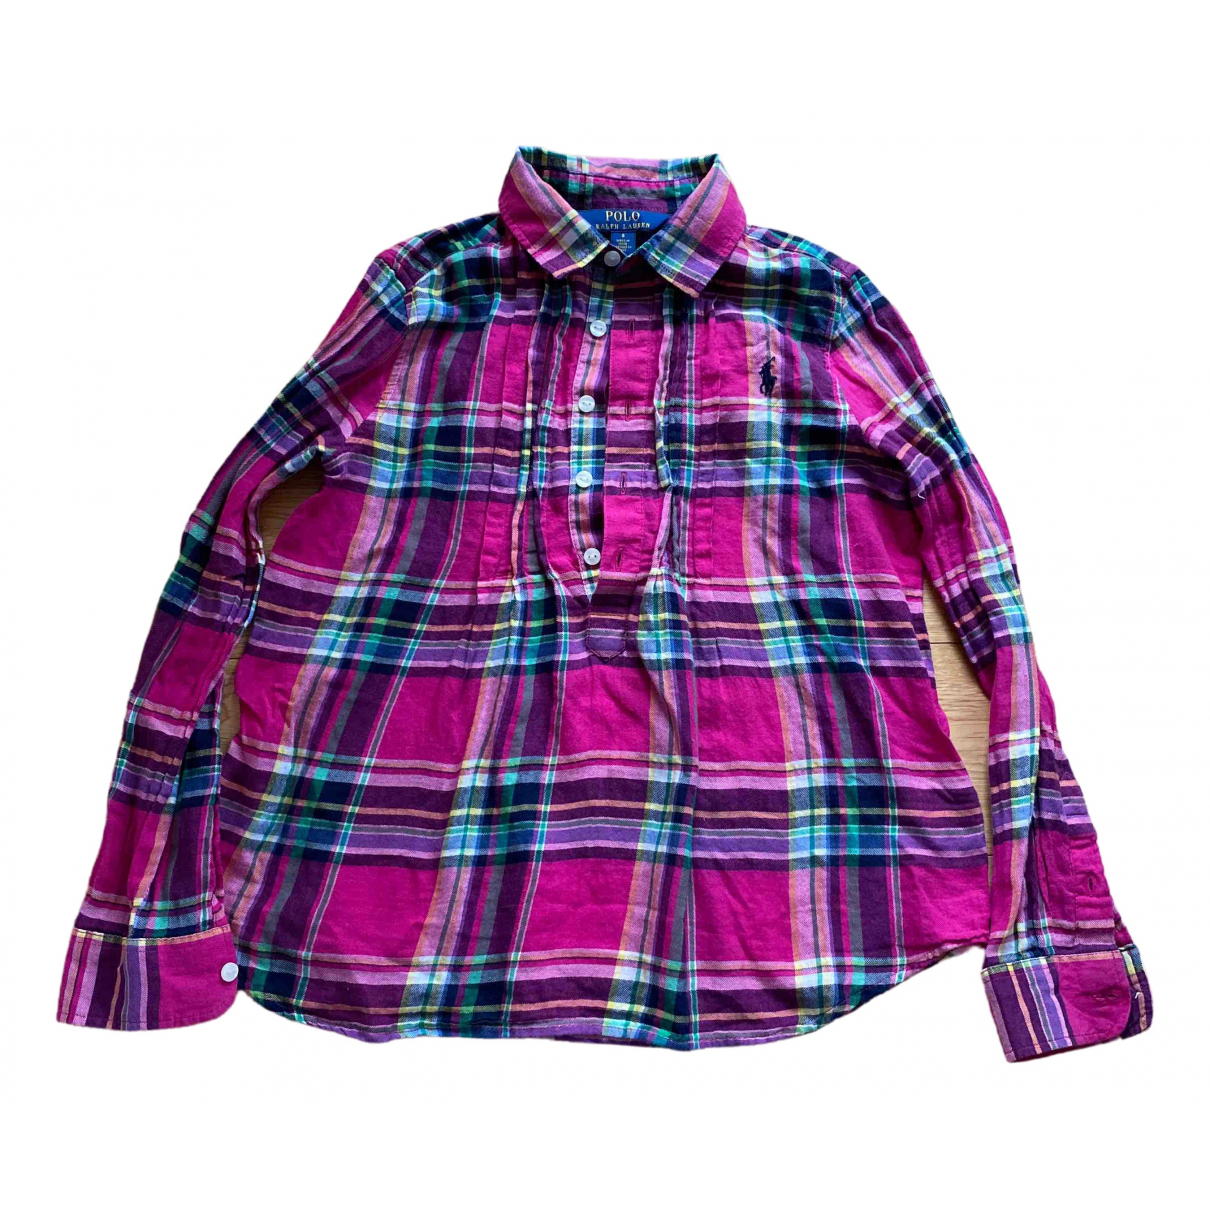 Polo Ralph Lauren \N Multicolour Cotton  top for Kids 8 years - until 50 inches UK